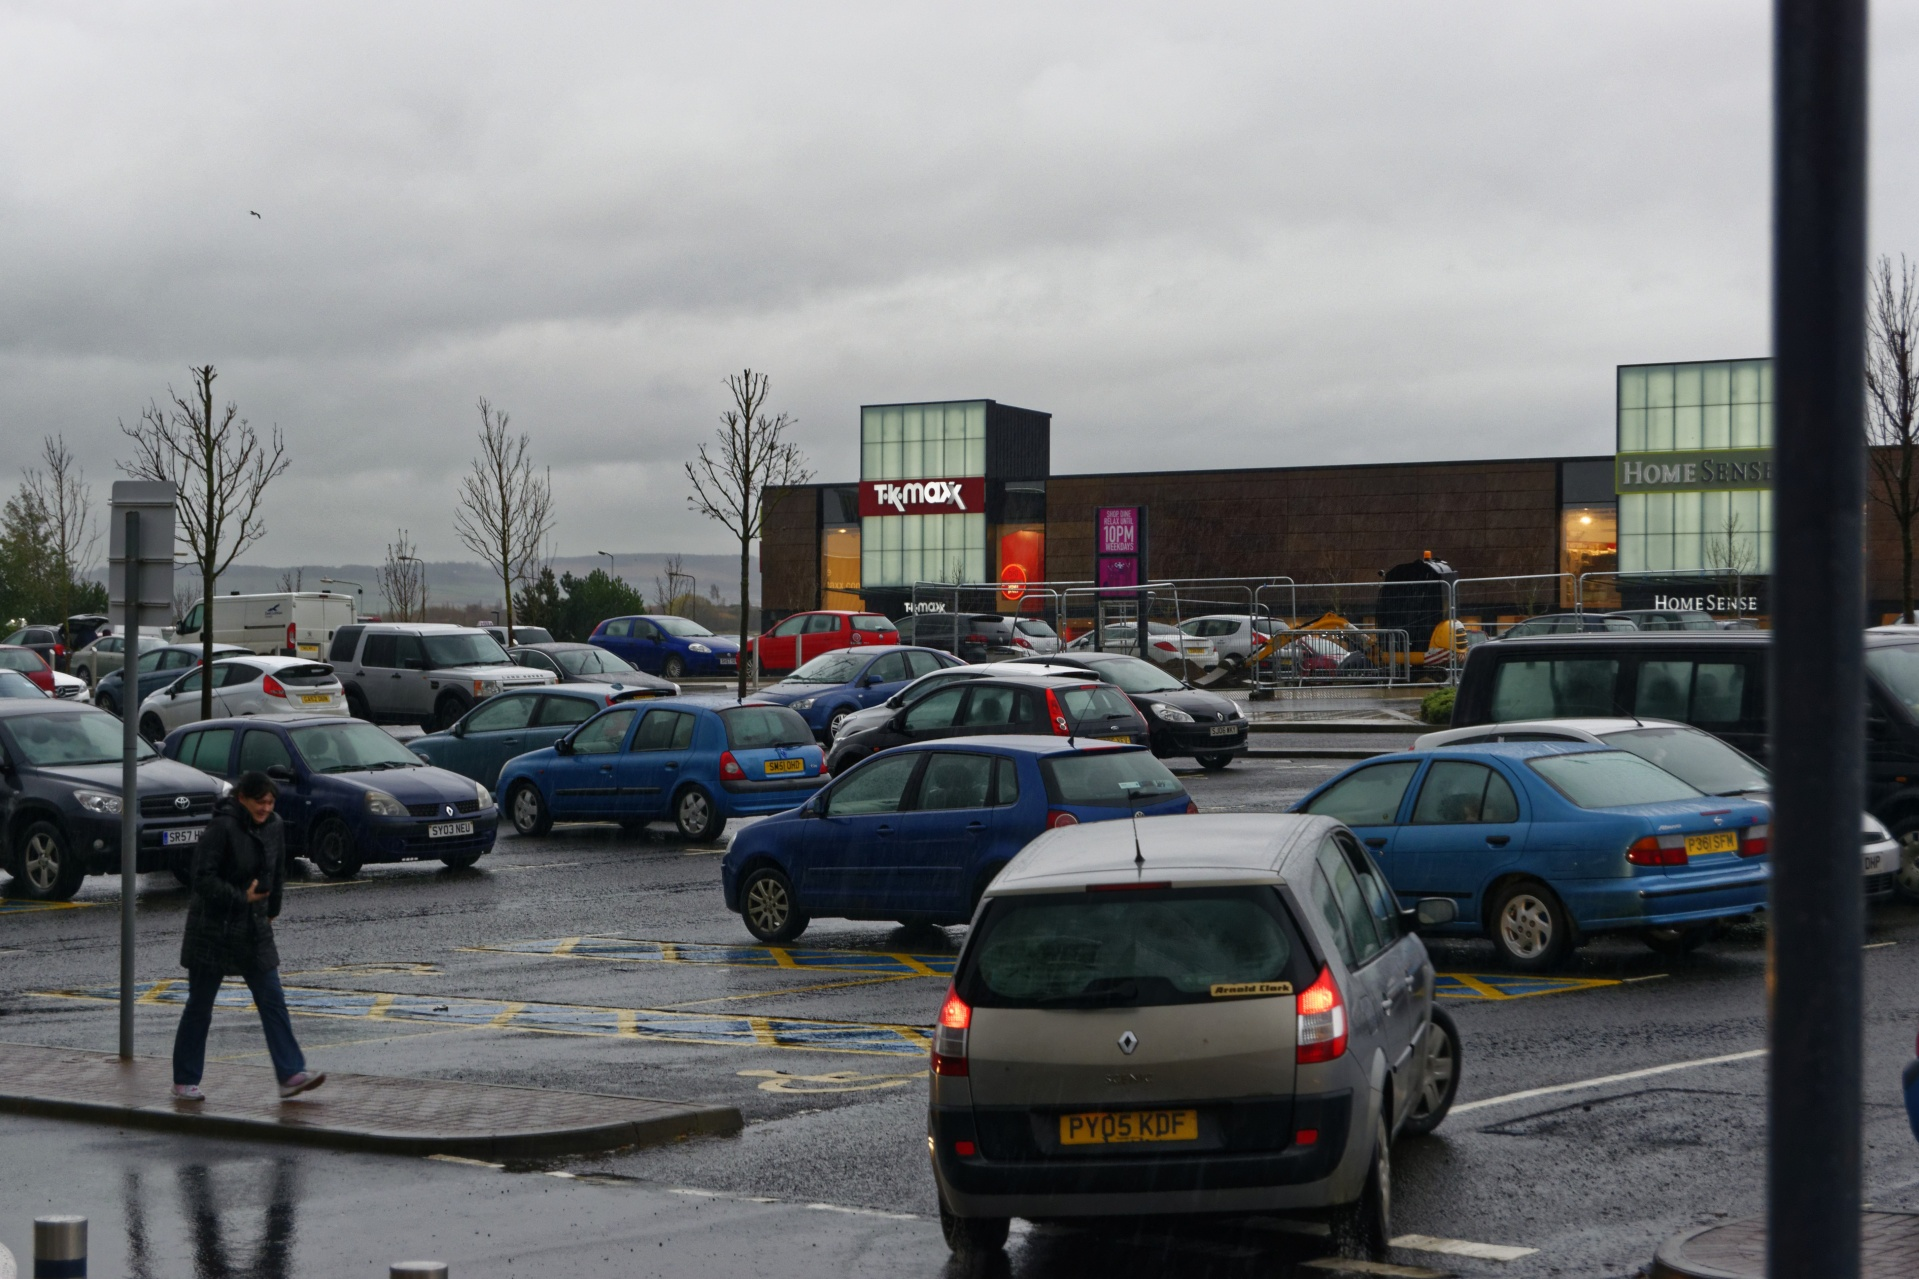 Download free photo of Car park,cars,rainy,cold,wet - from needpix.com